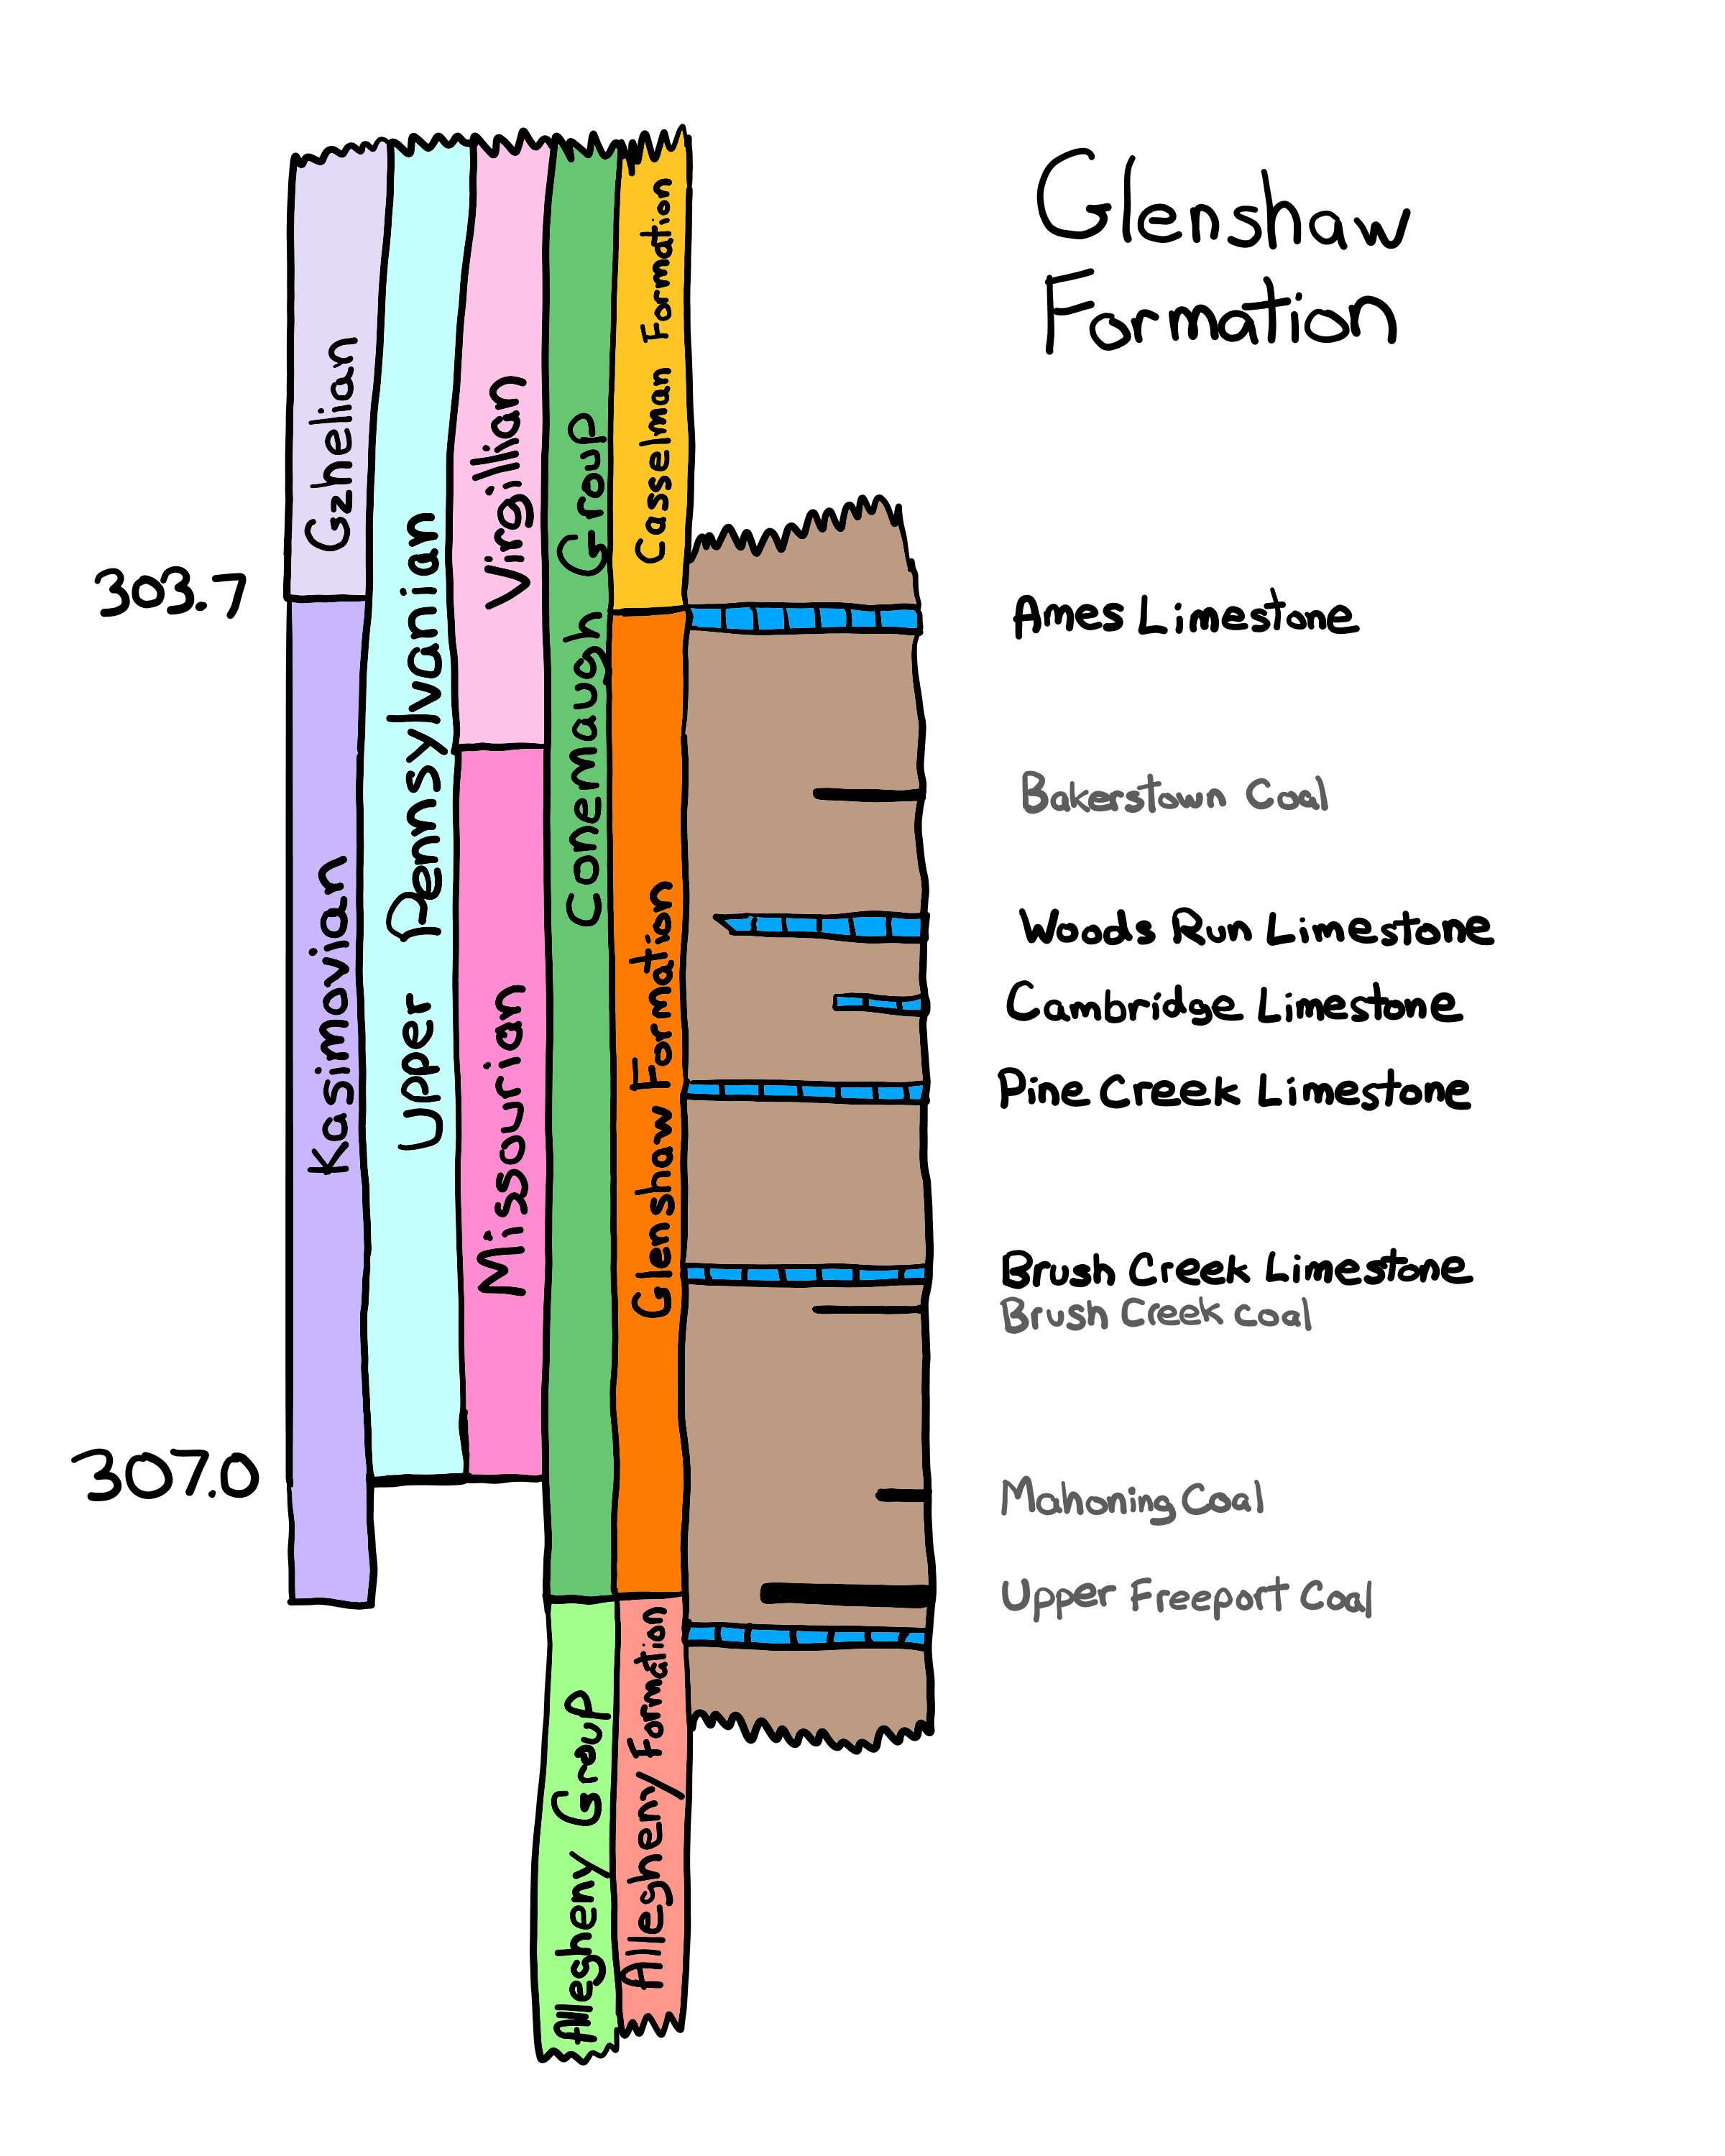 The Glenshaw Formation